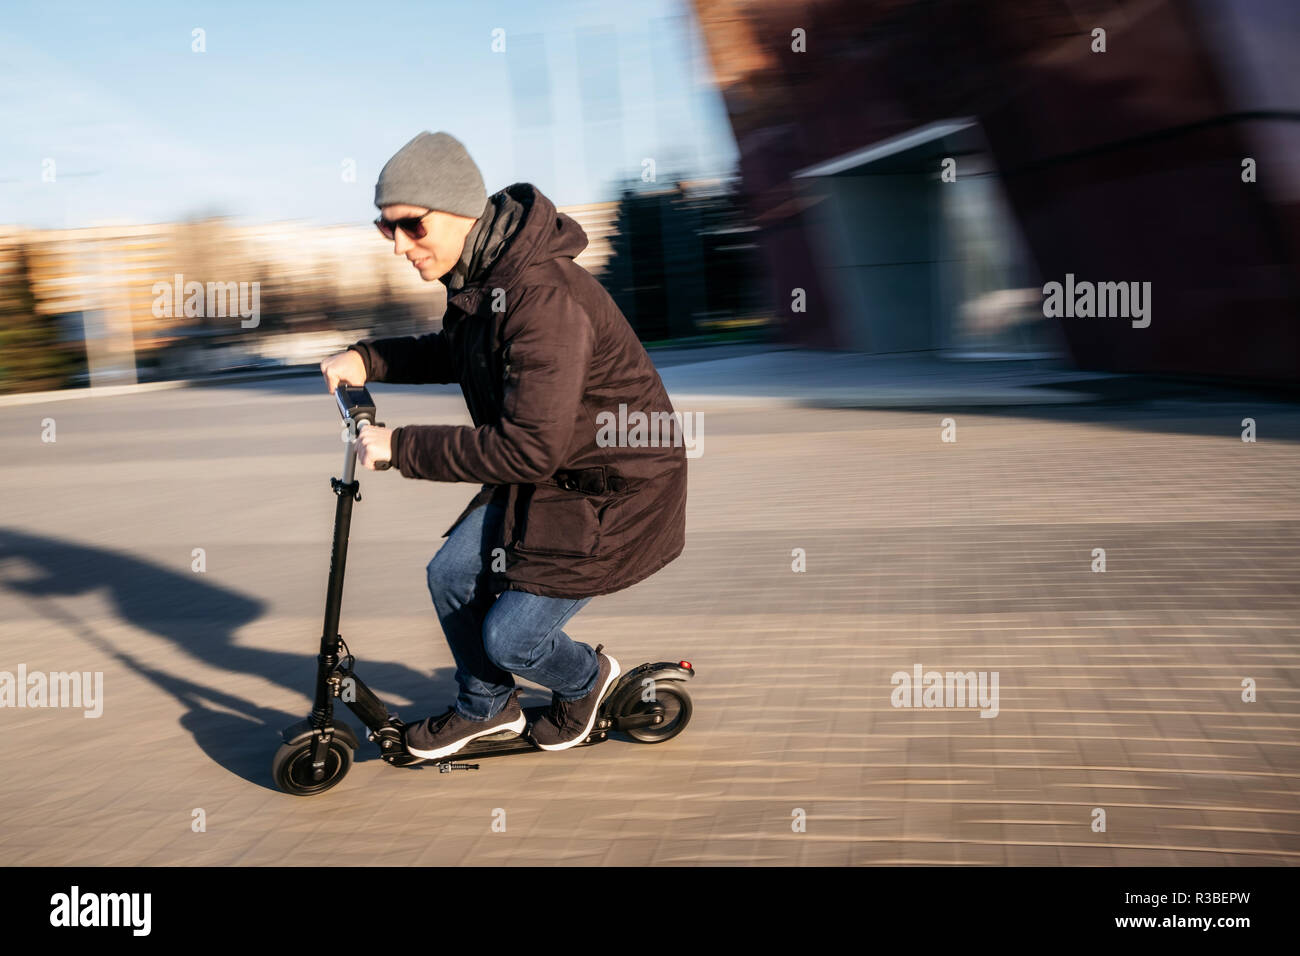 Young man in casual wear on electric kick scooter on city street in motion blur in autumn - Stock Image